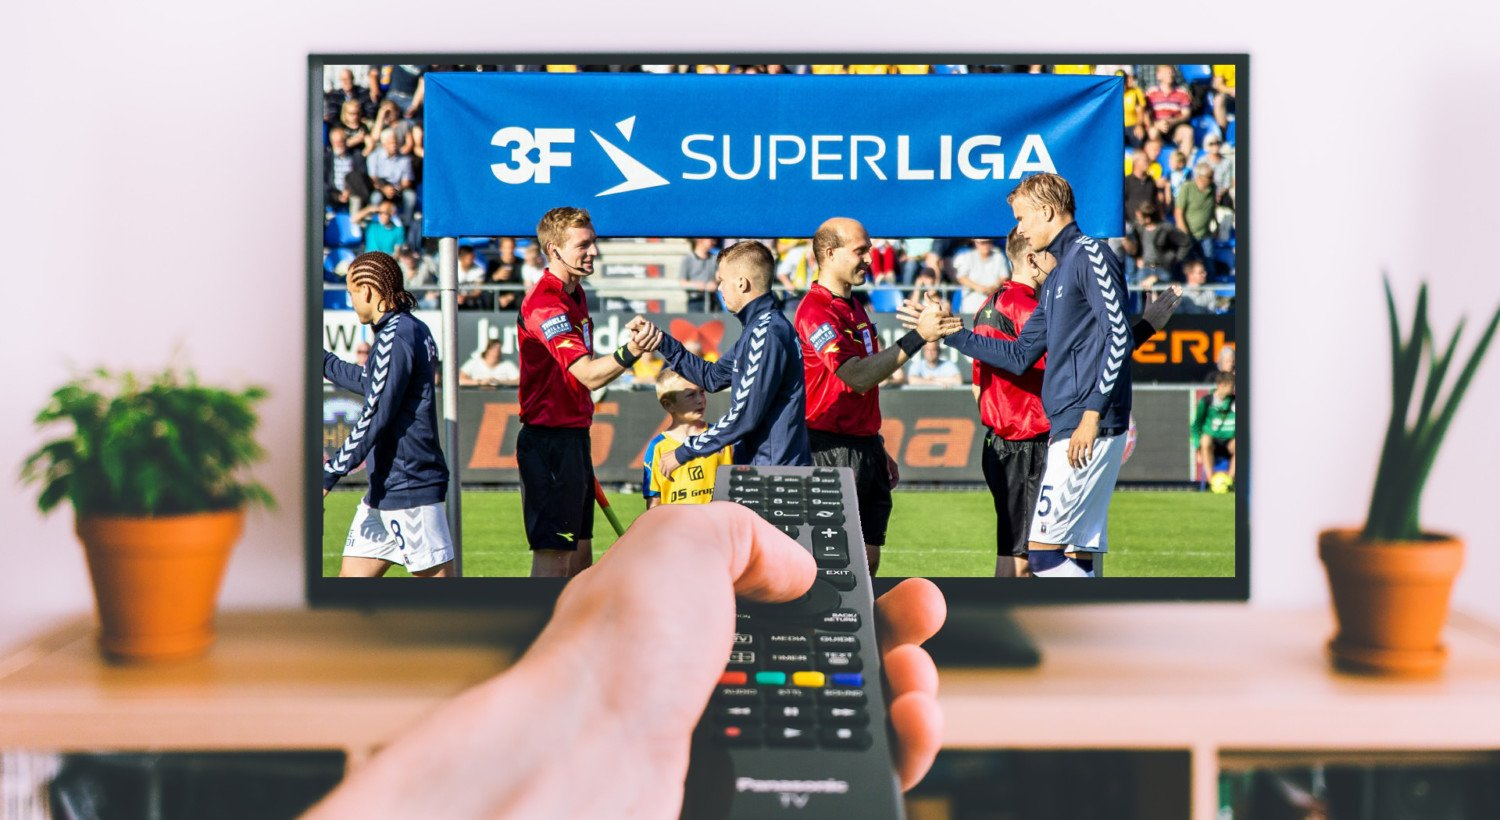 Se Superliga